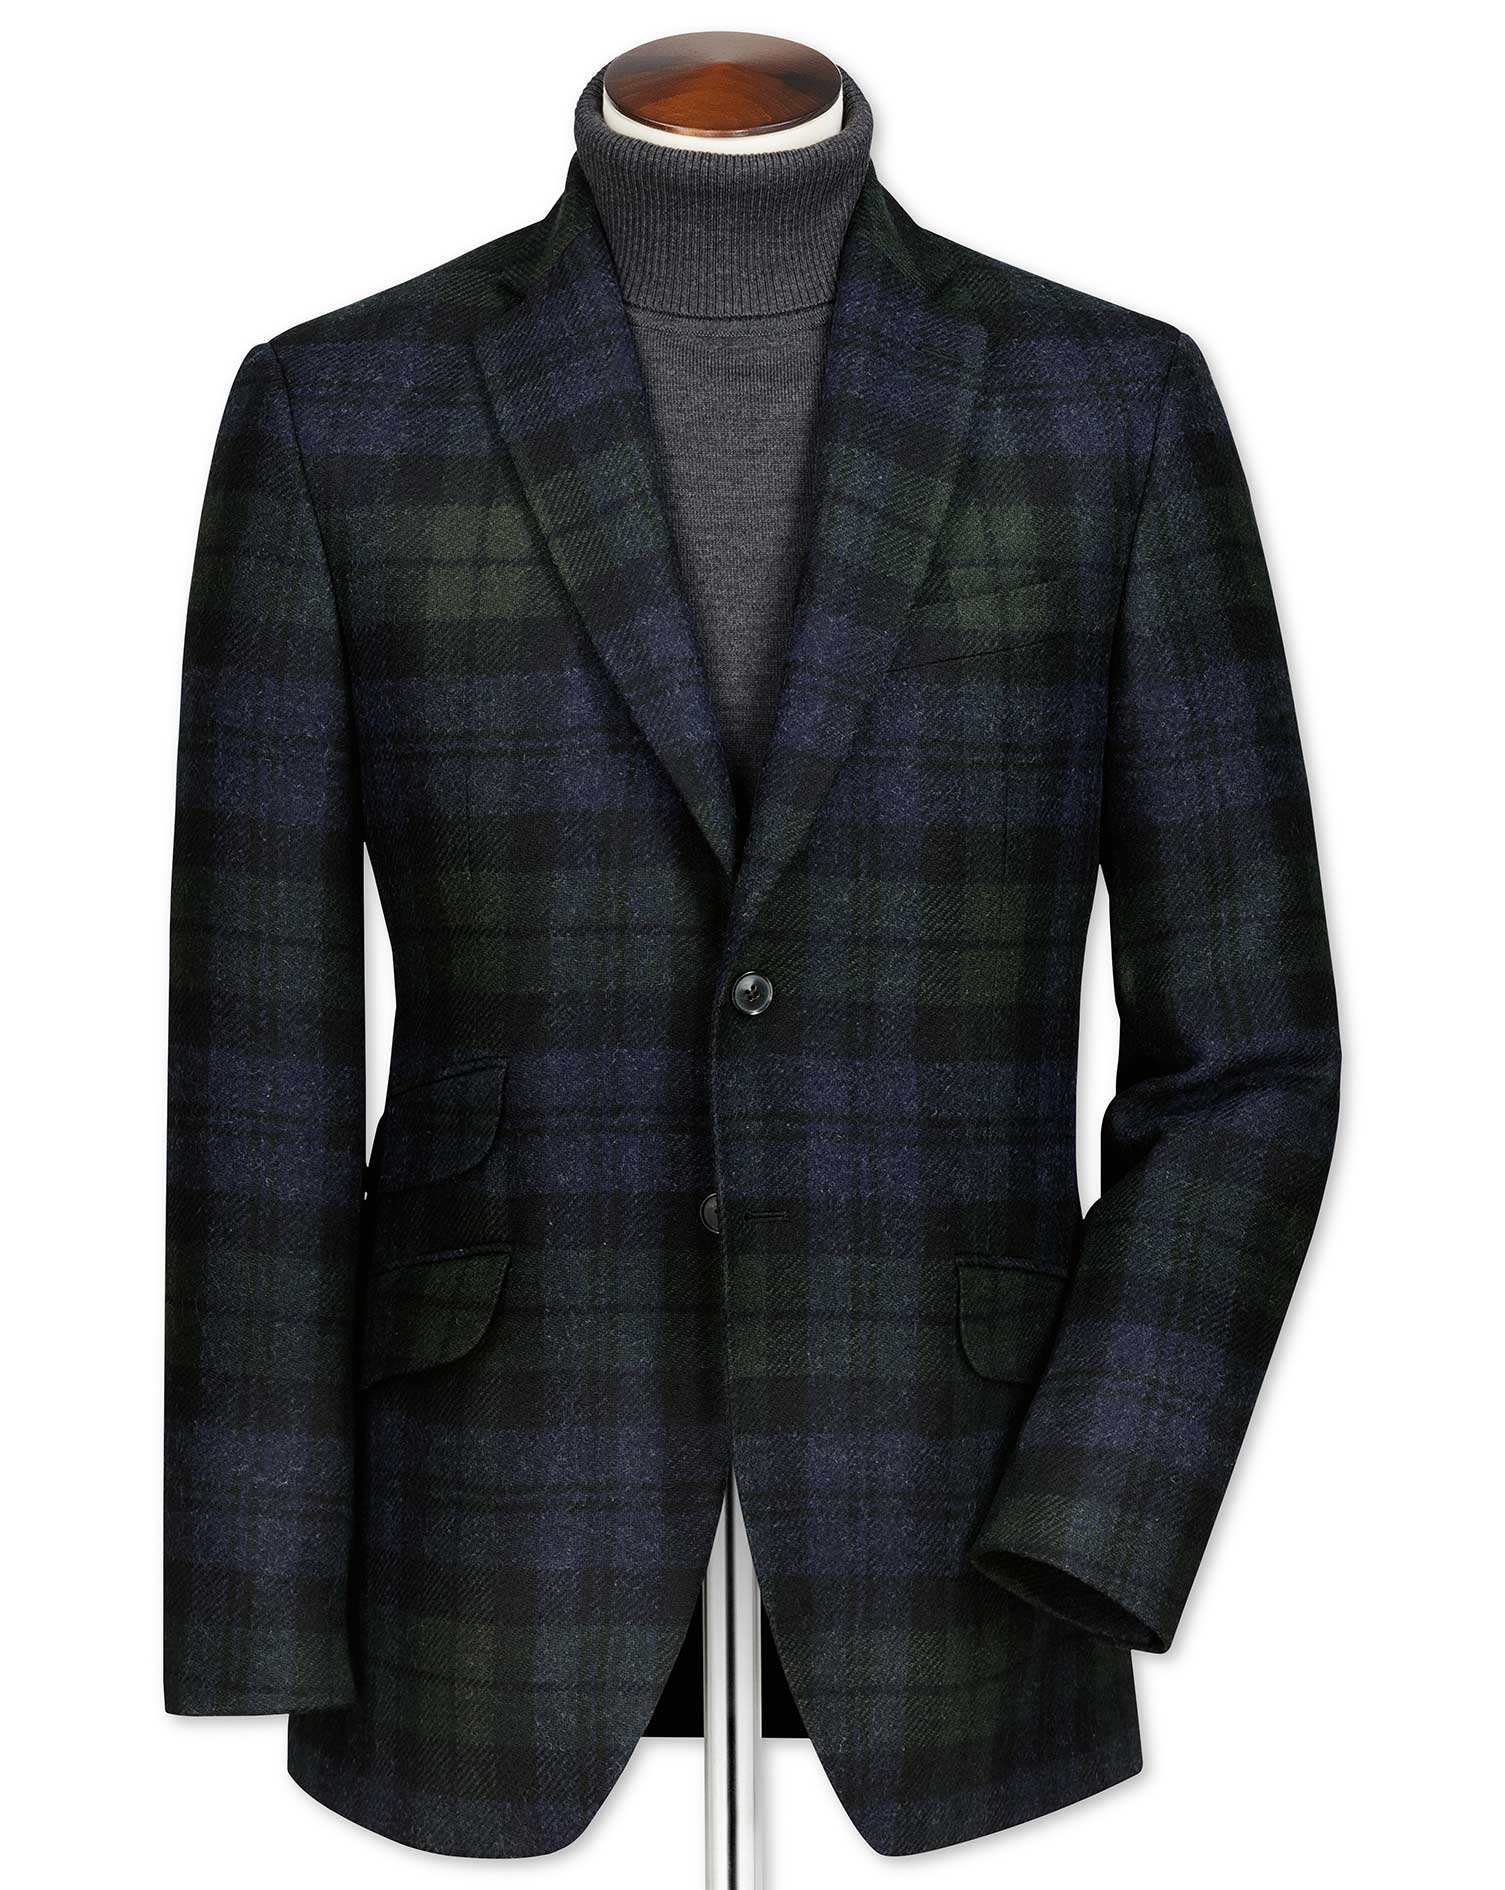 Slim Fit Green and Navy Checkered Wool Wool Jacket Size 42 Short by Charles Tyrwhitt